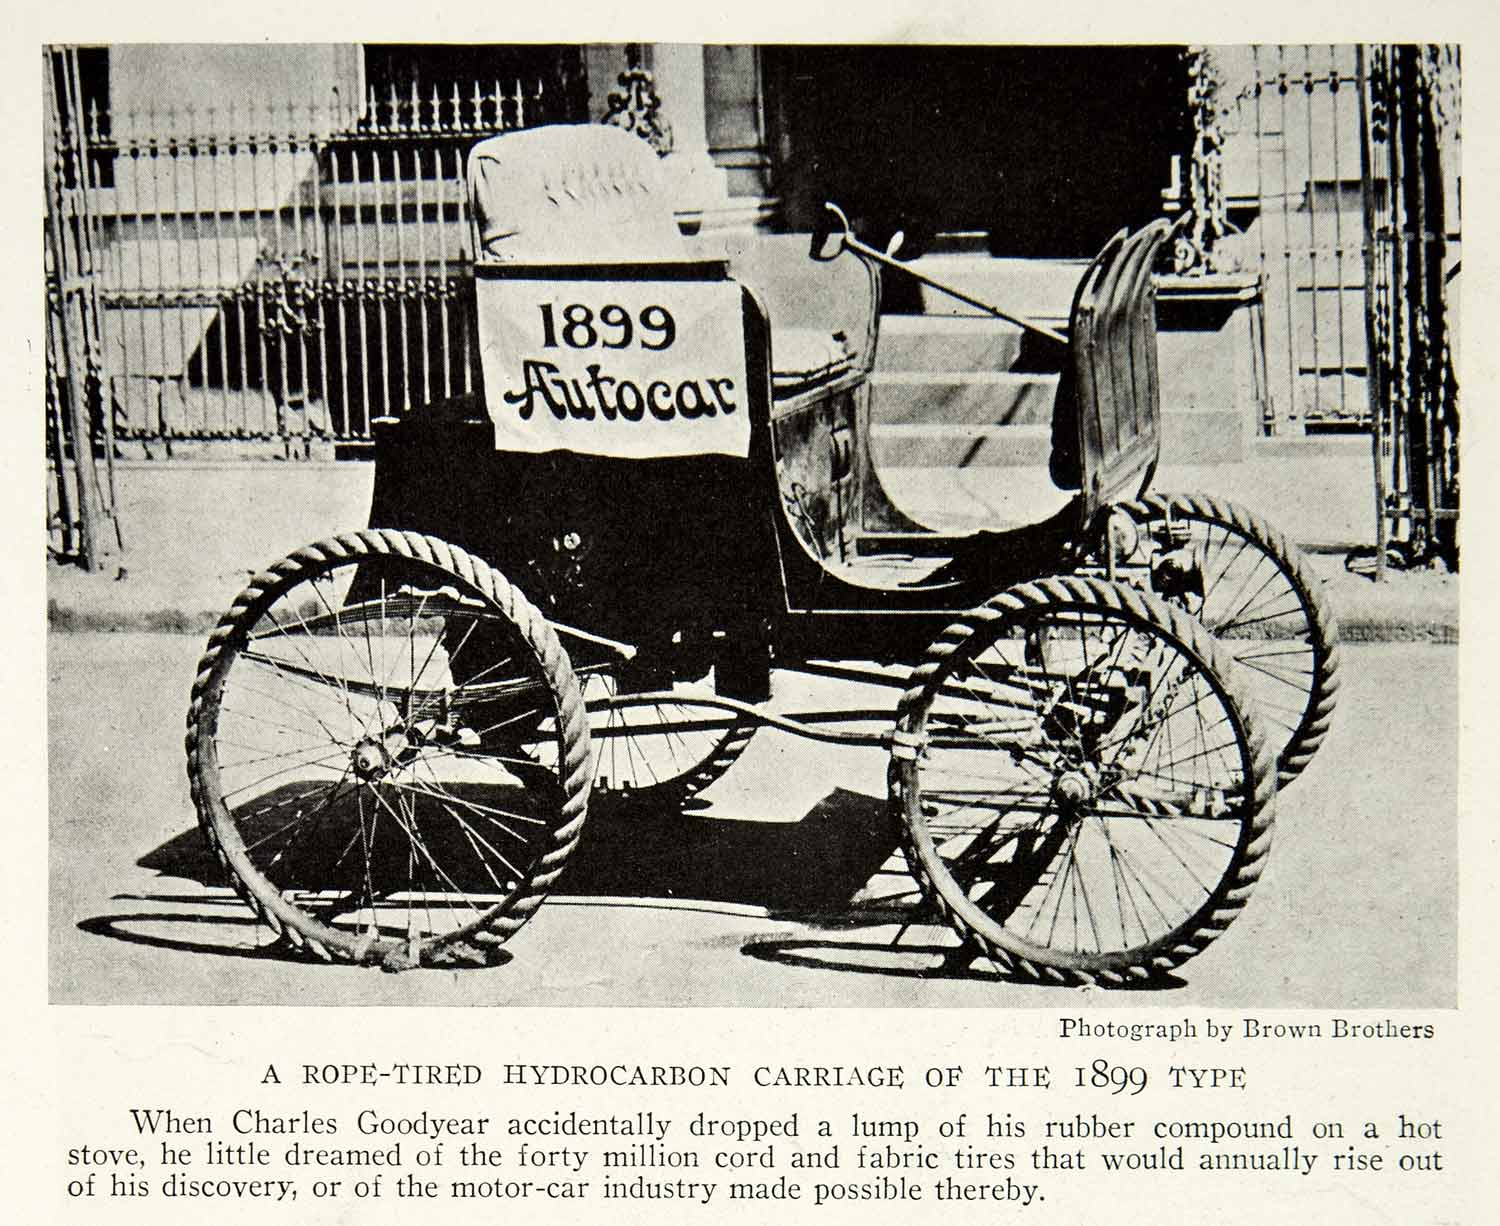 1923 Print Autocar Rope Tires Hydrocarbon Carriage Type 1899 Historical NGMA1